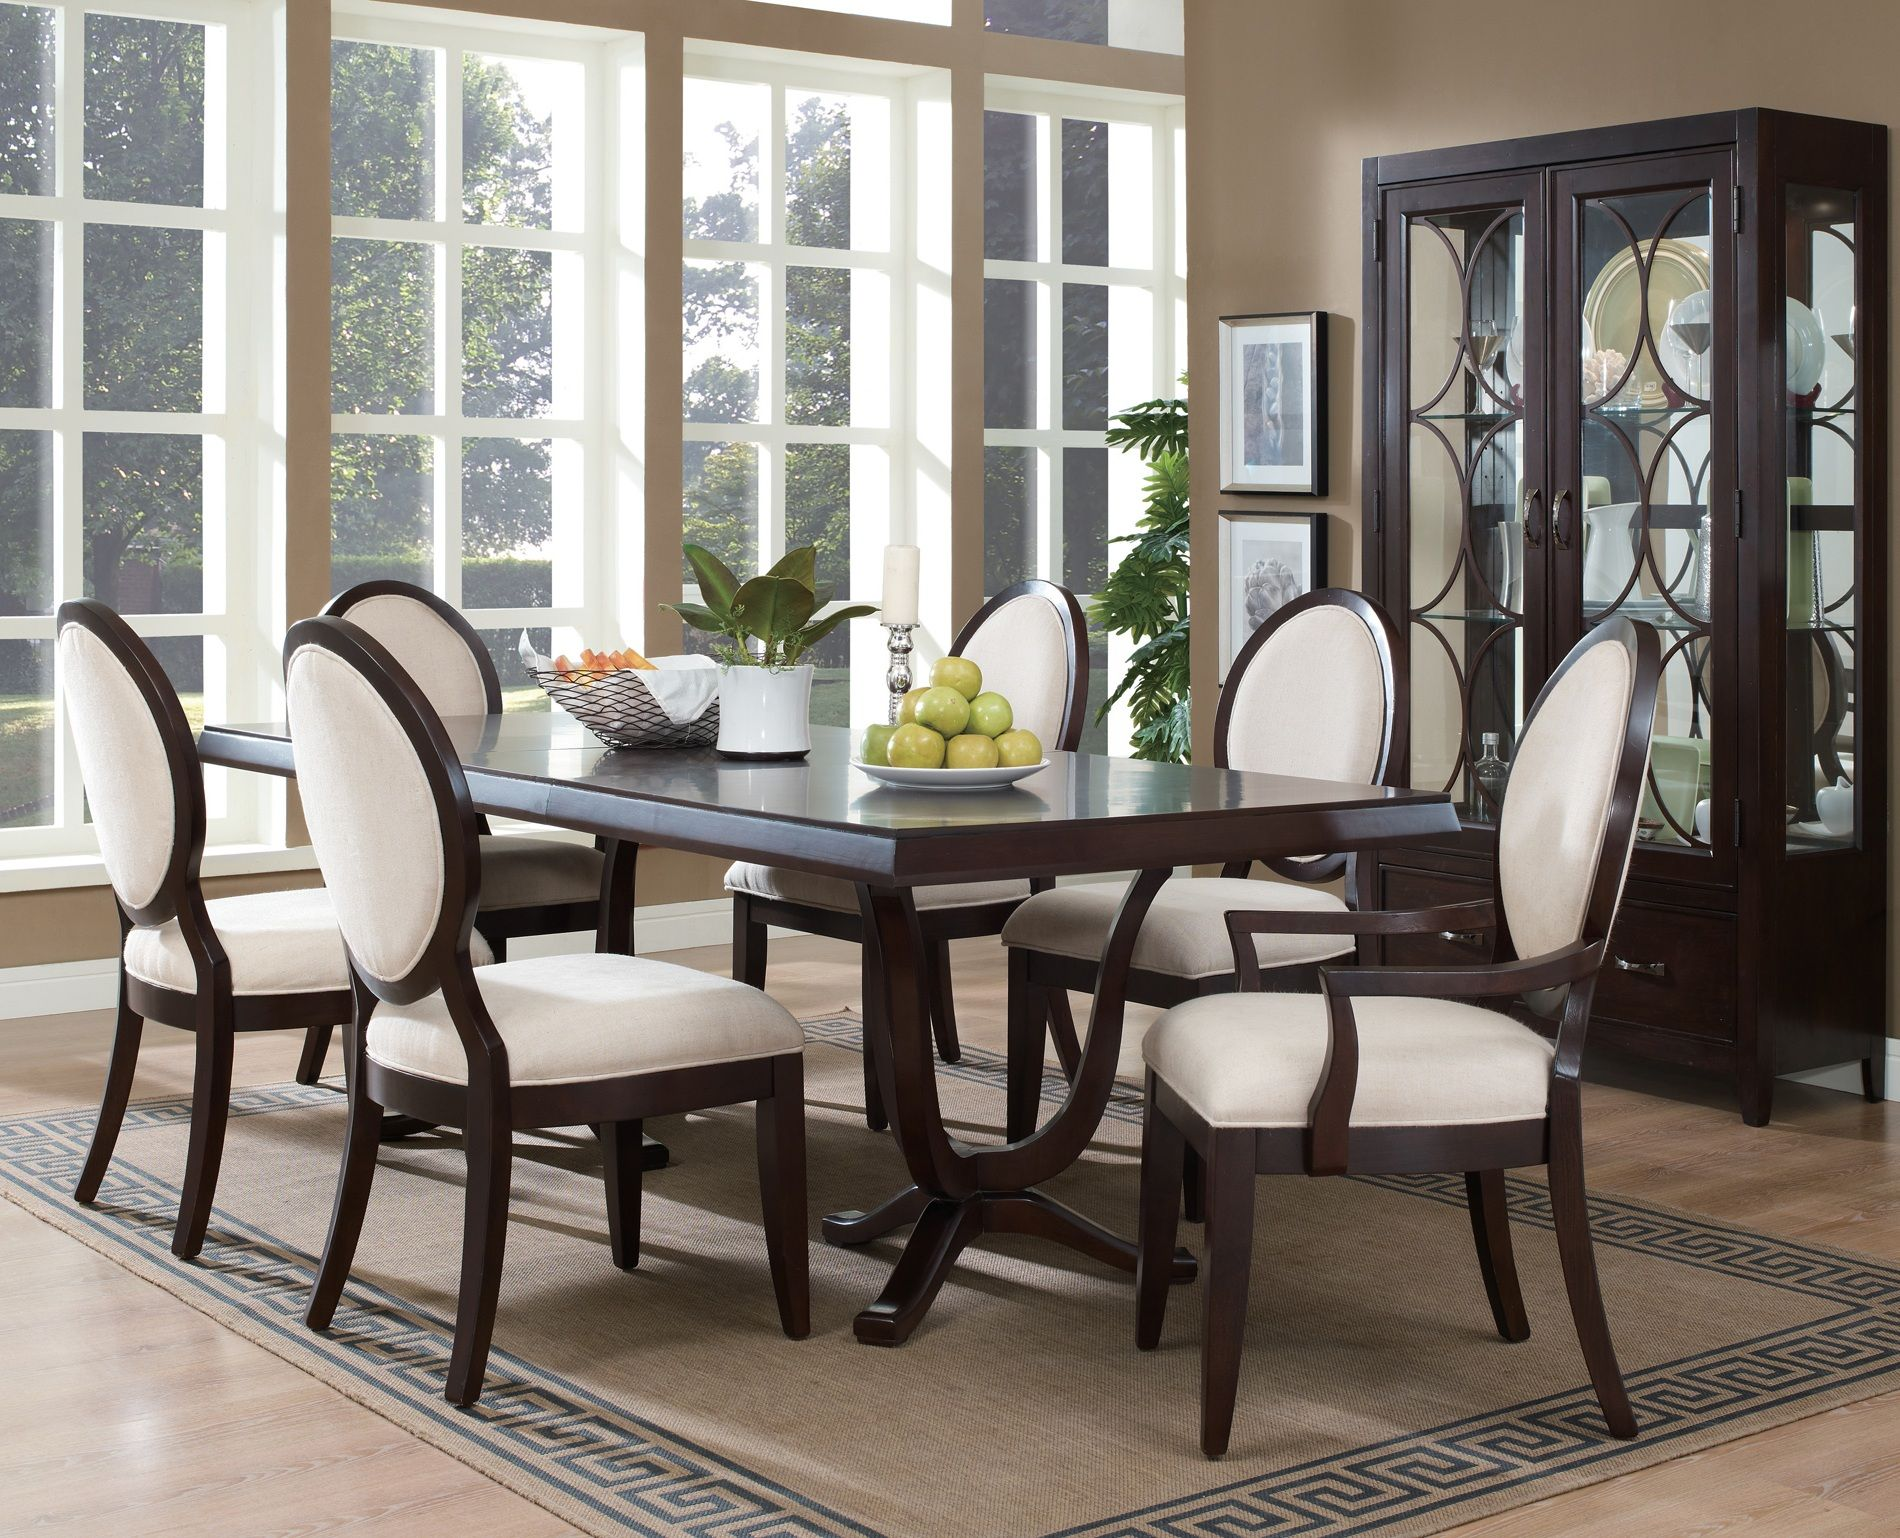 dcor for formal dining room designs - Designer Dining Room Sets